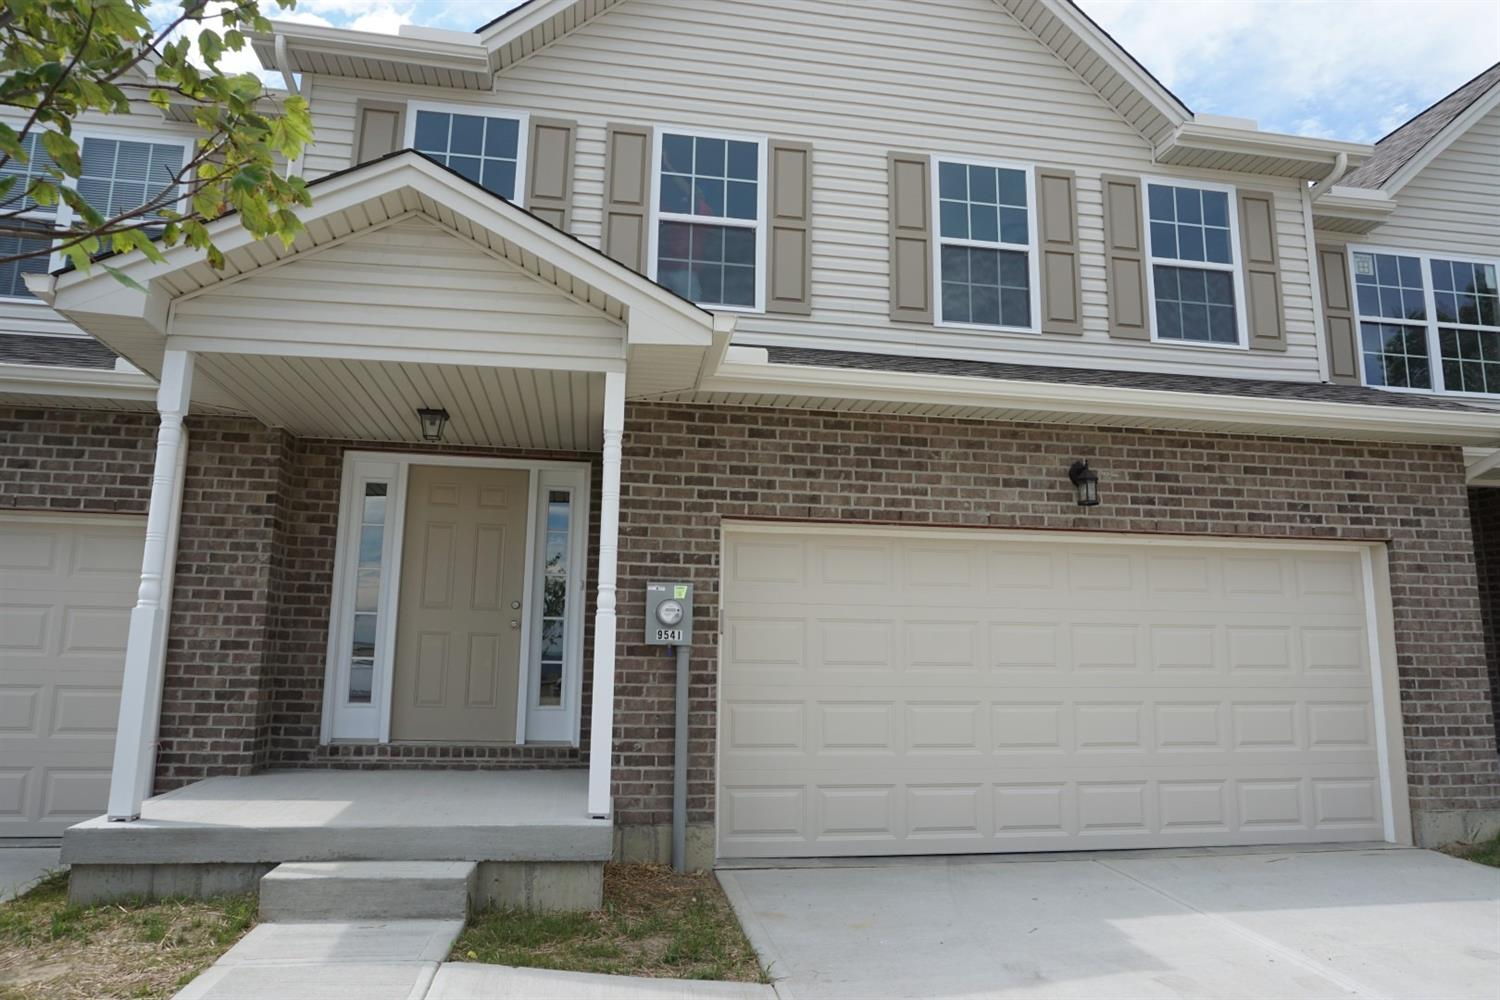 Property for sale at 9541 Conservancy Place, West Chester,  OH 45011